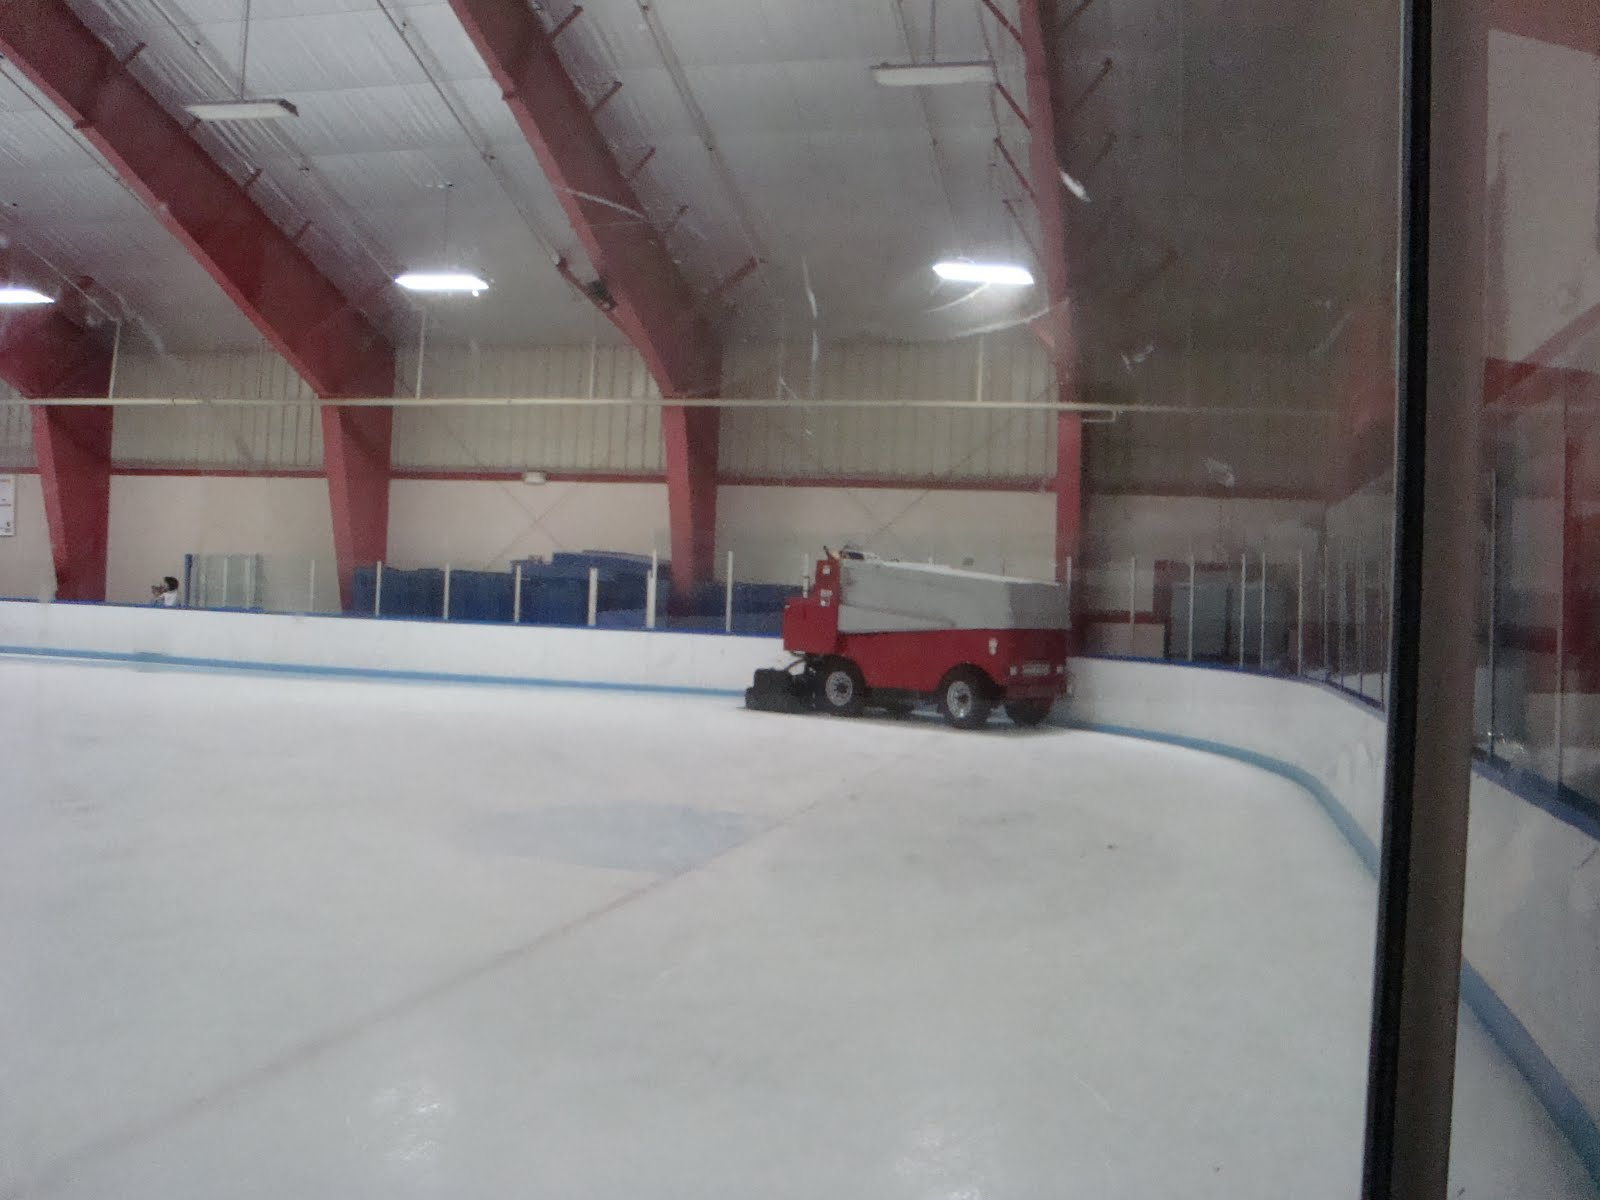 Roller skating rink laurel md - Wheaton Ice Rink Is A Well Maintained Ice Skating Rink On The Boarder Of Silver Spring And Wheaton The Staff Is Very Attentive And Were On The Ice At All